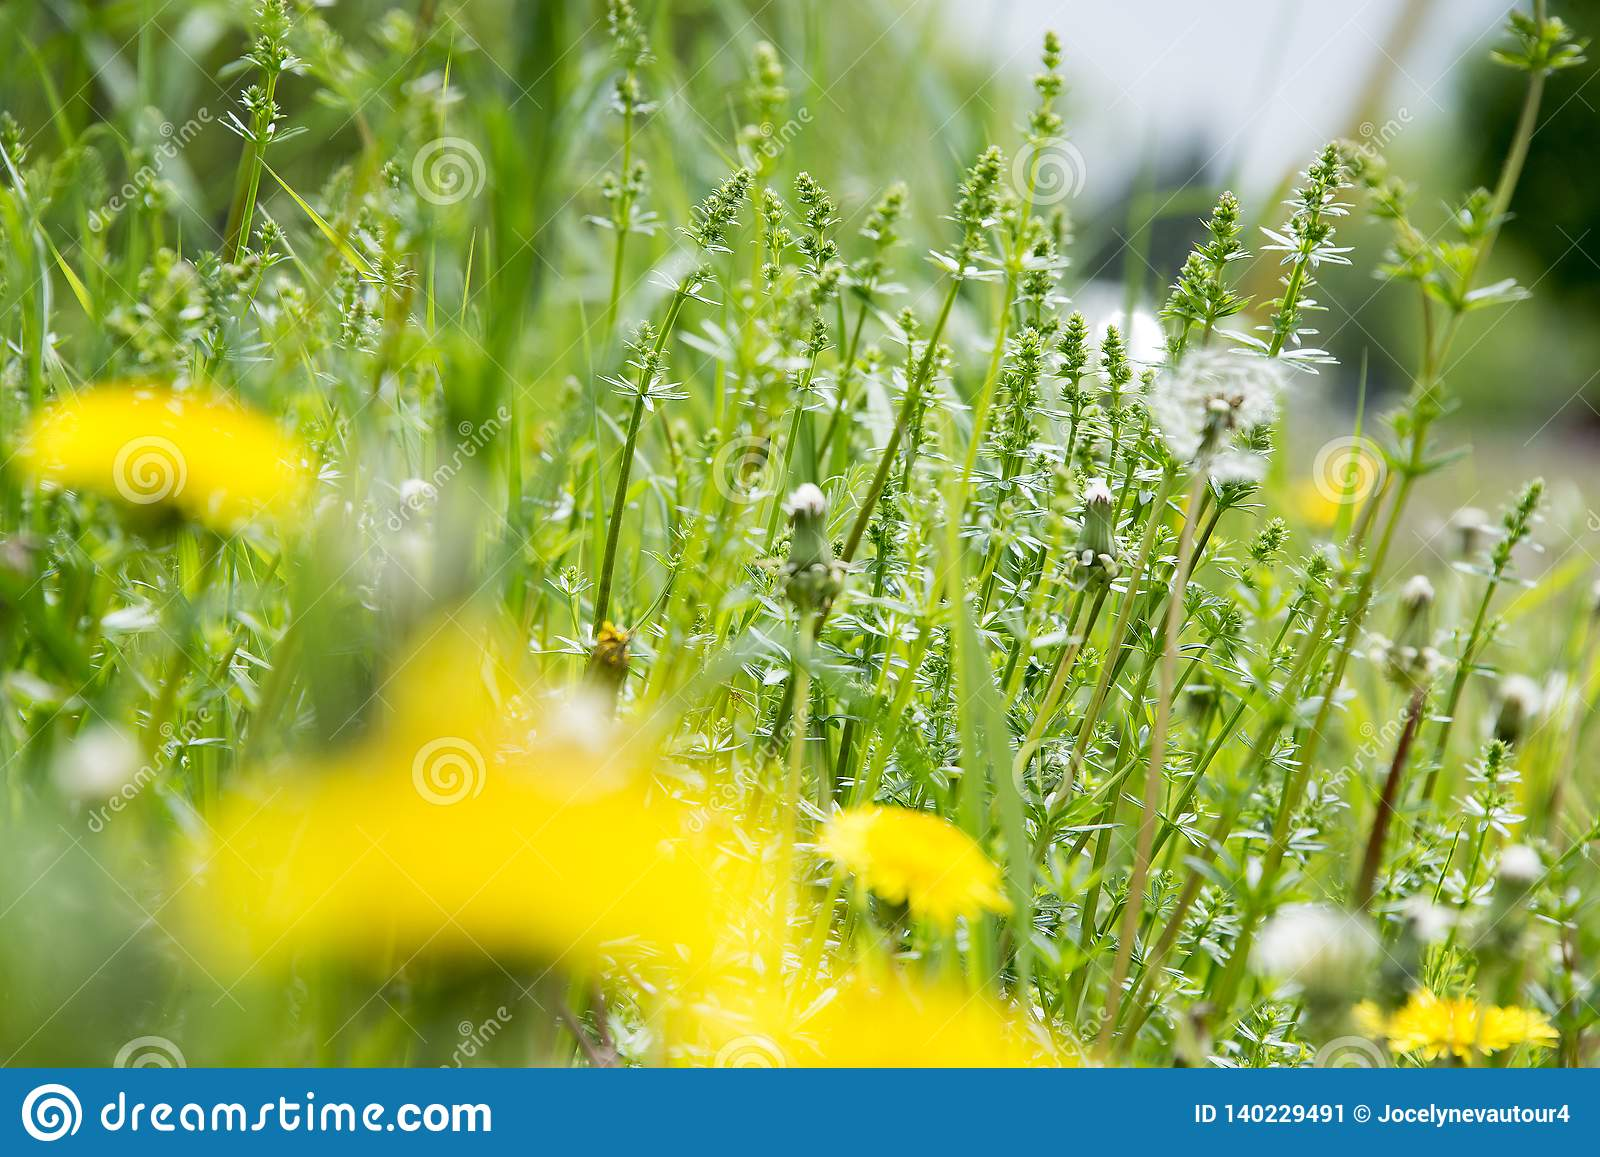 Tall weeds and dandelions